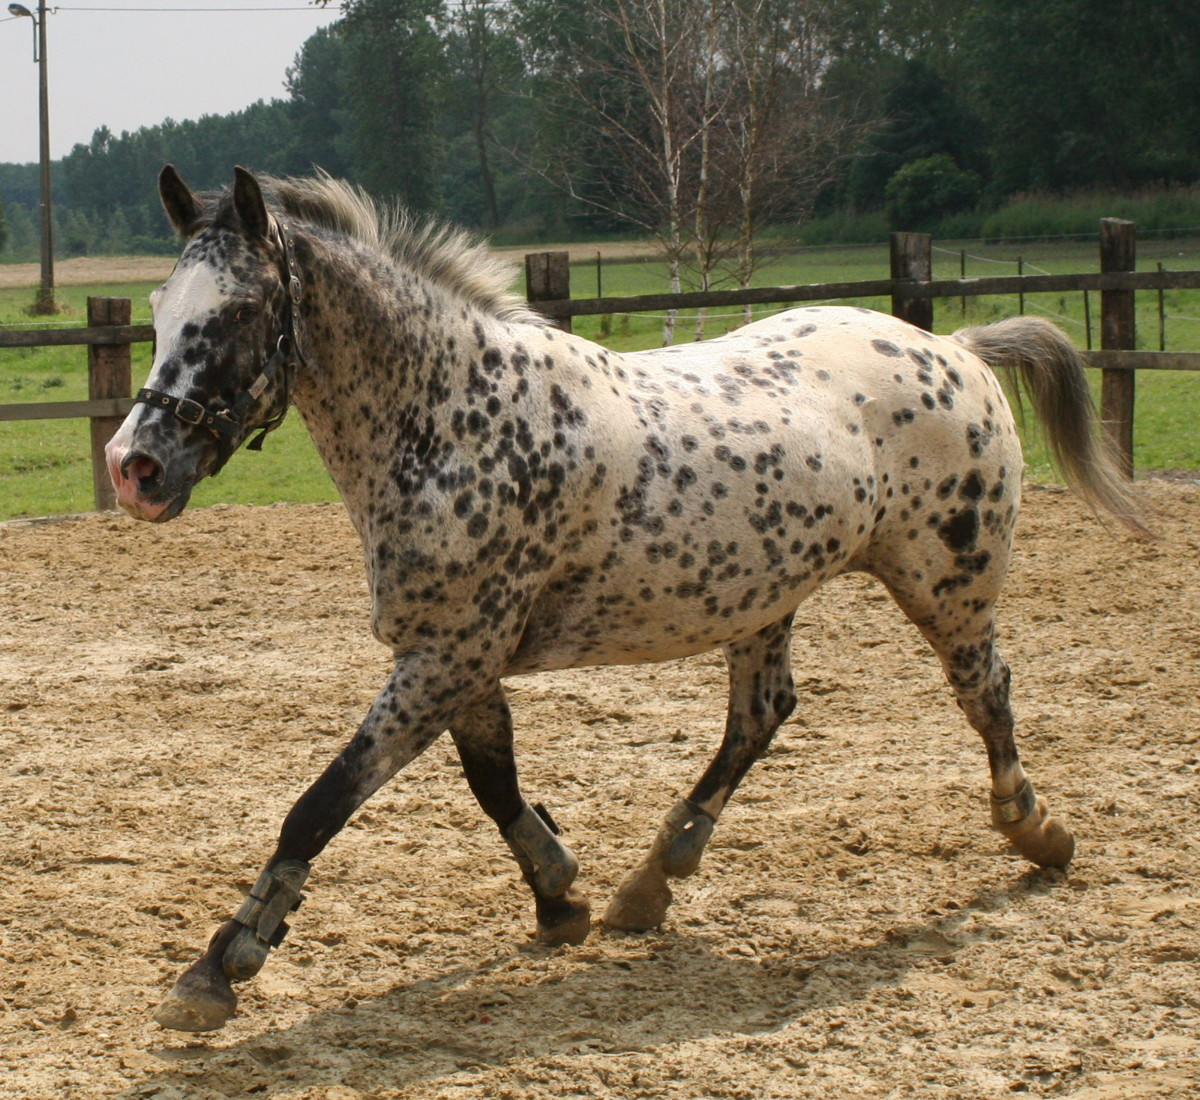 What would you name this leopard Appaloosa?